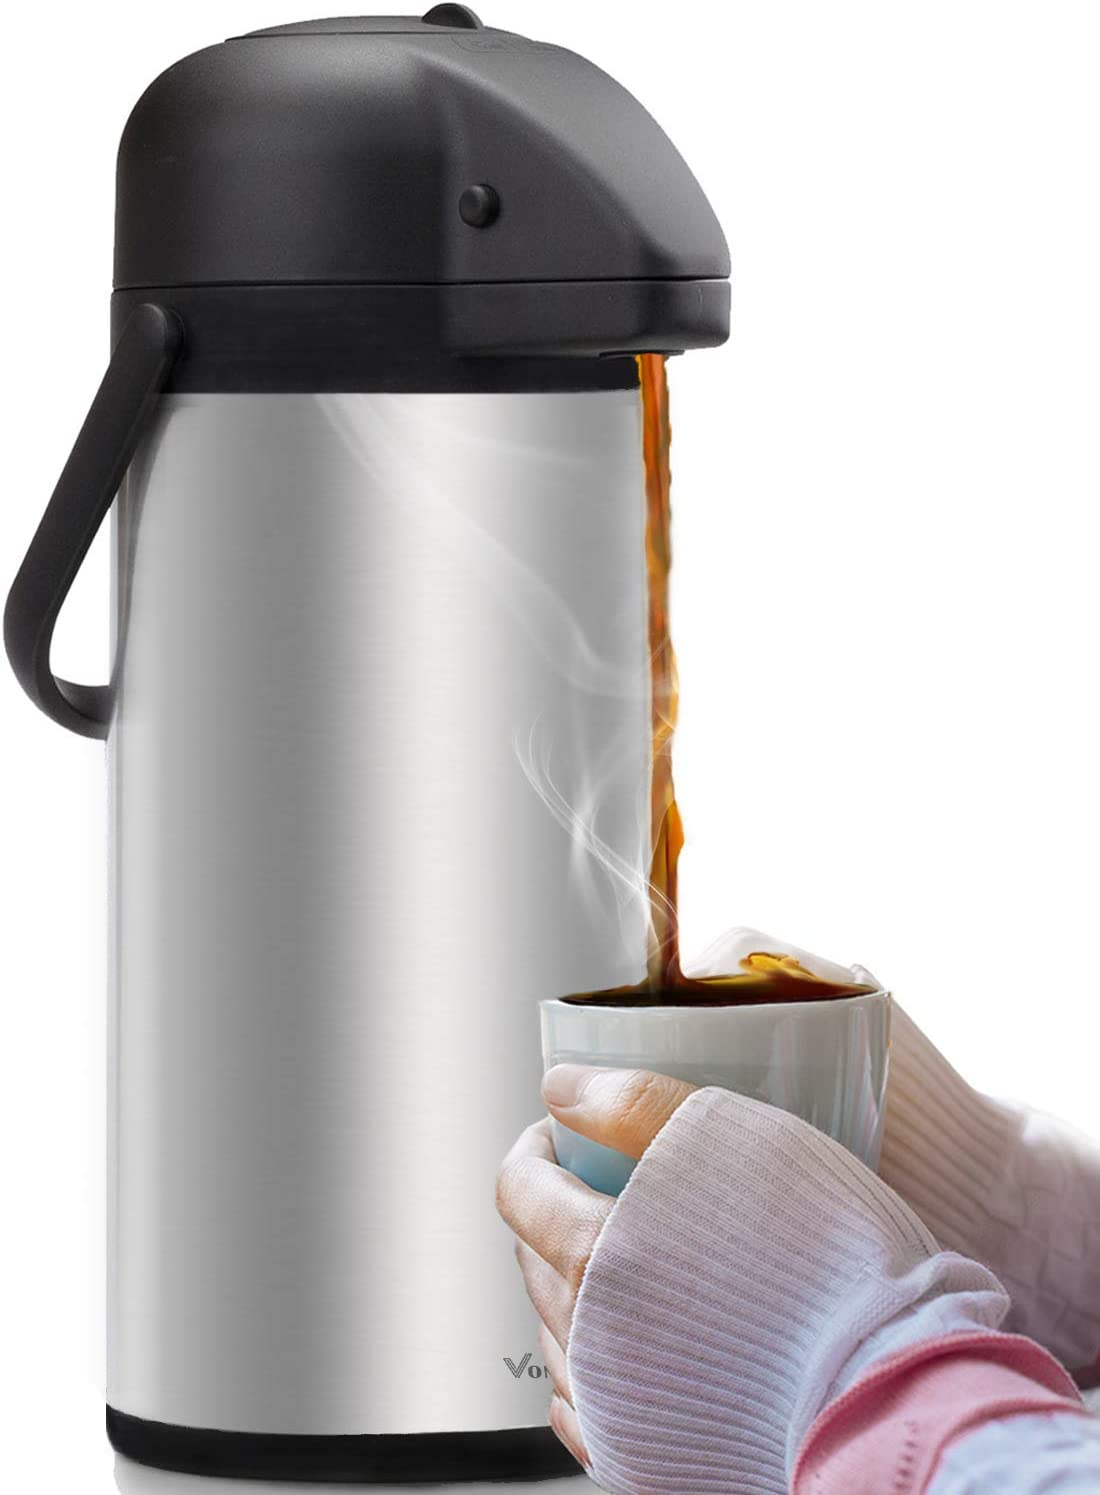 Airpot Coffee Dispenser with Pump - Insulated Stainless Steel Coffee Carafe (102 oz.) - Thermal Beverage Dispenser - Thermos Urn for Hot/Cold Water, Party Chocolate Drinks